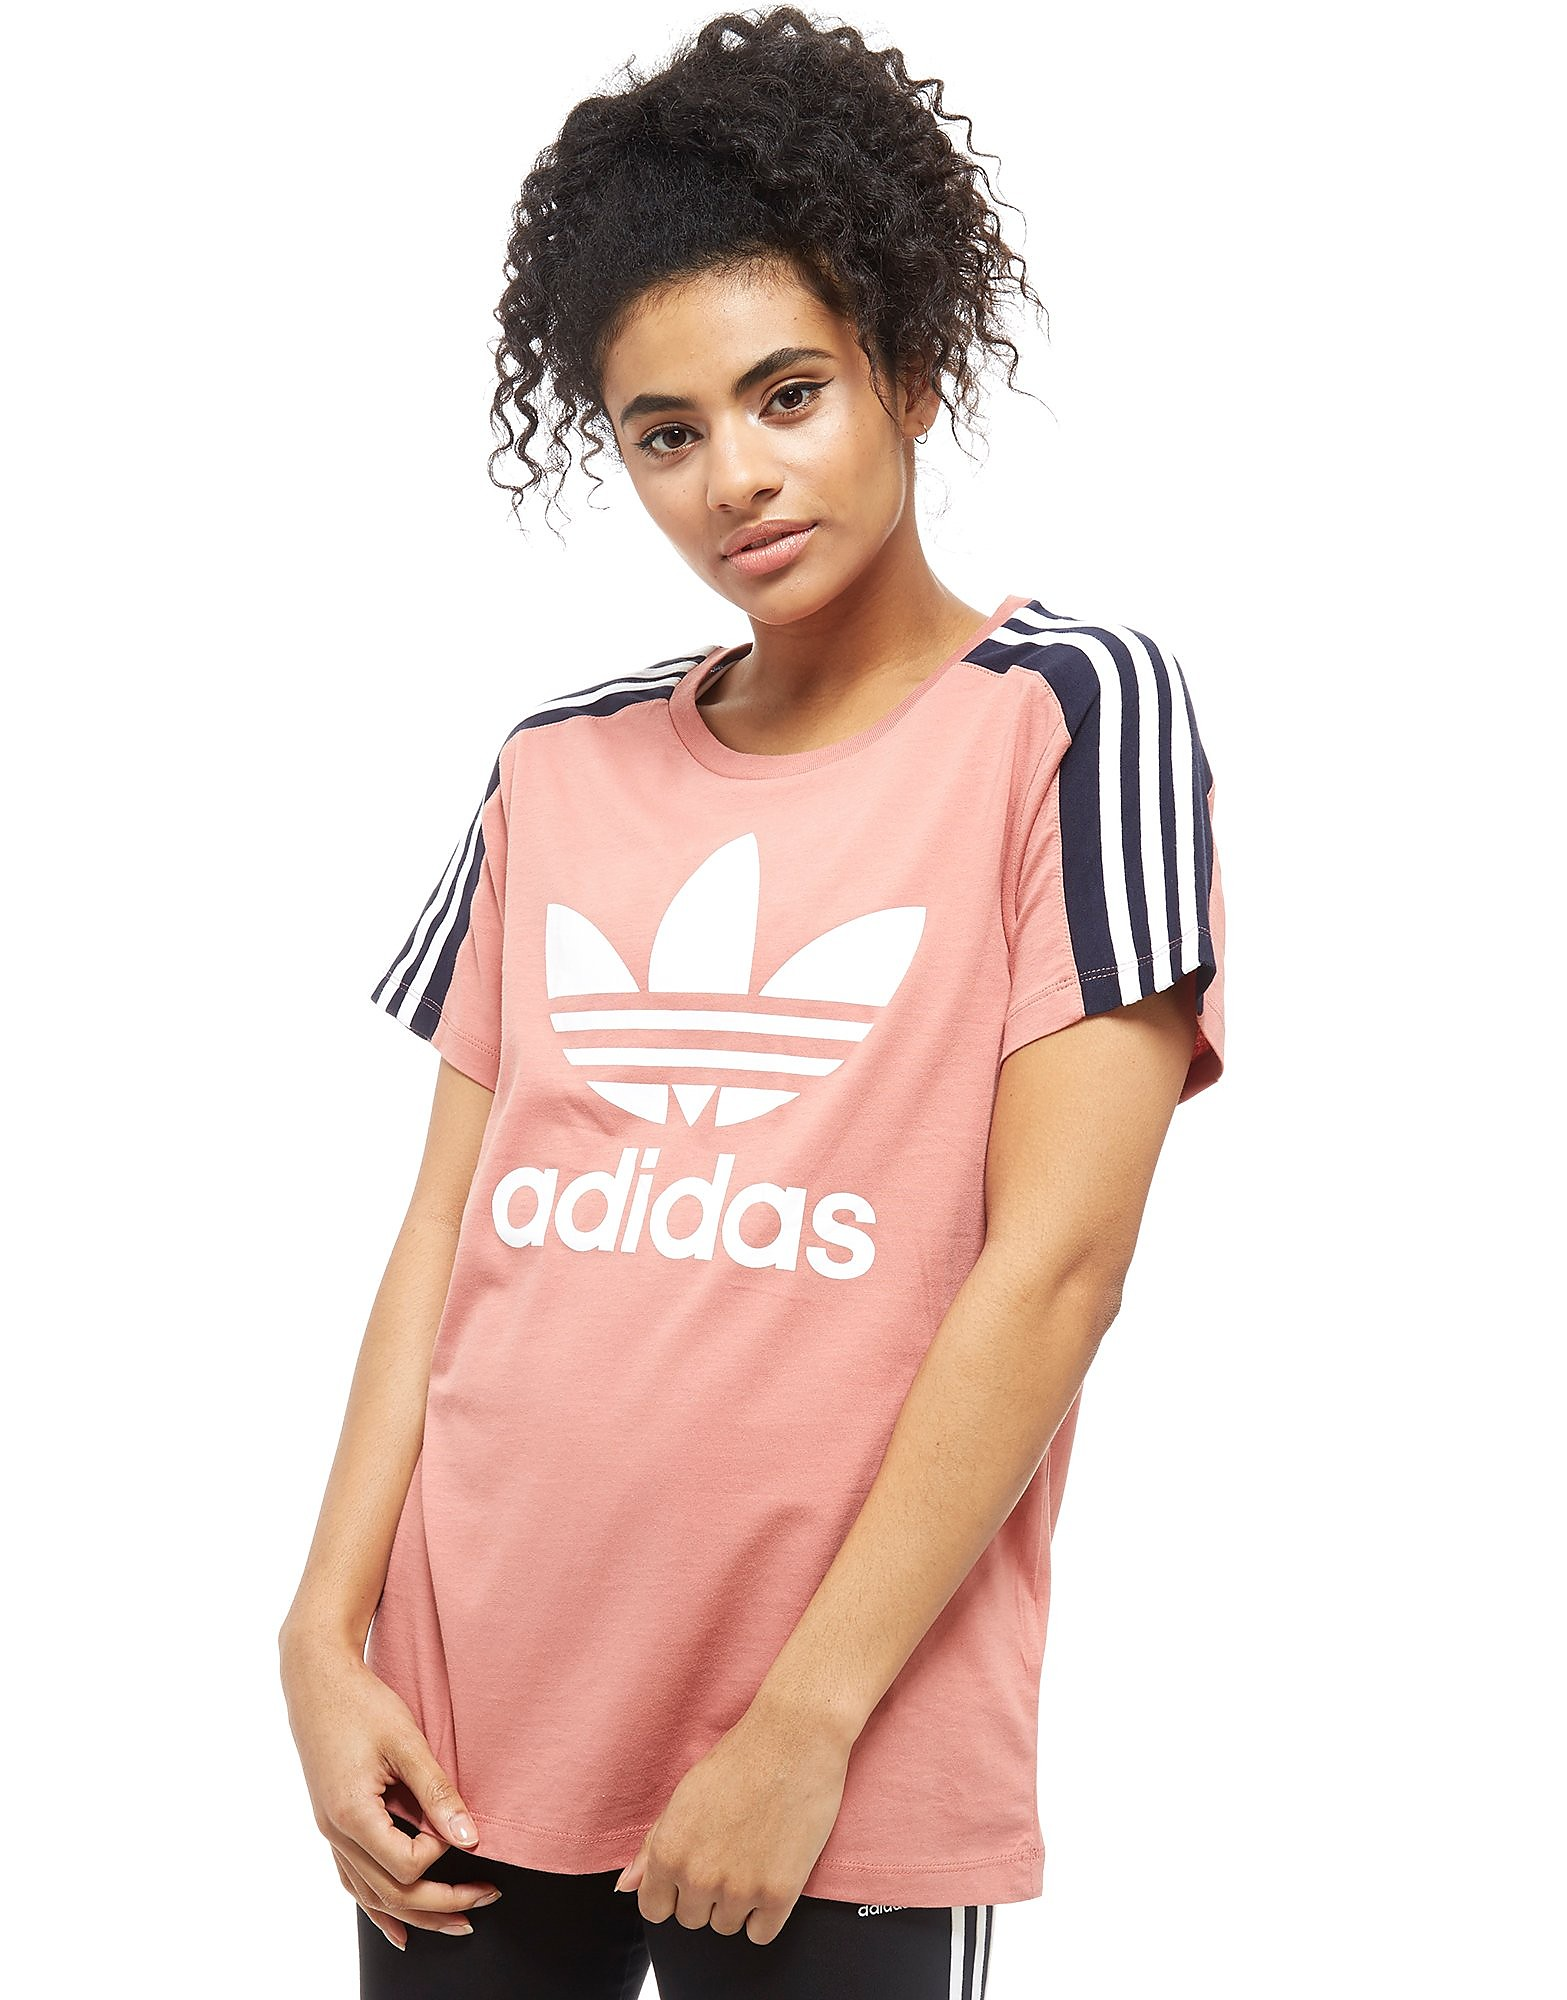 adidas Originals 3-Stripes Panel T-Shirt Pink-Marineblau